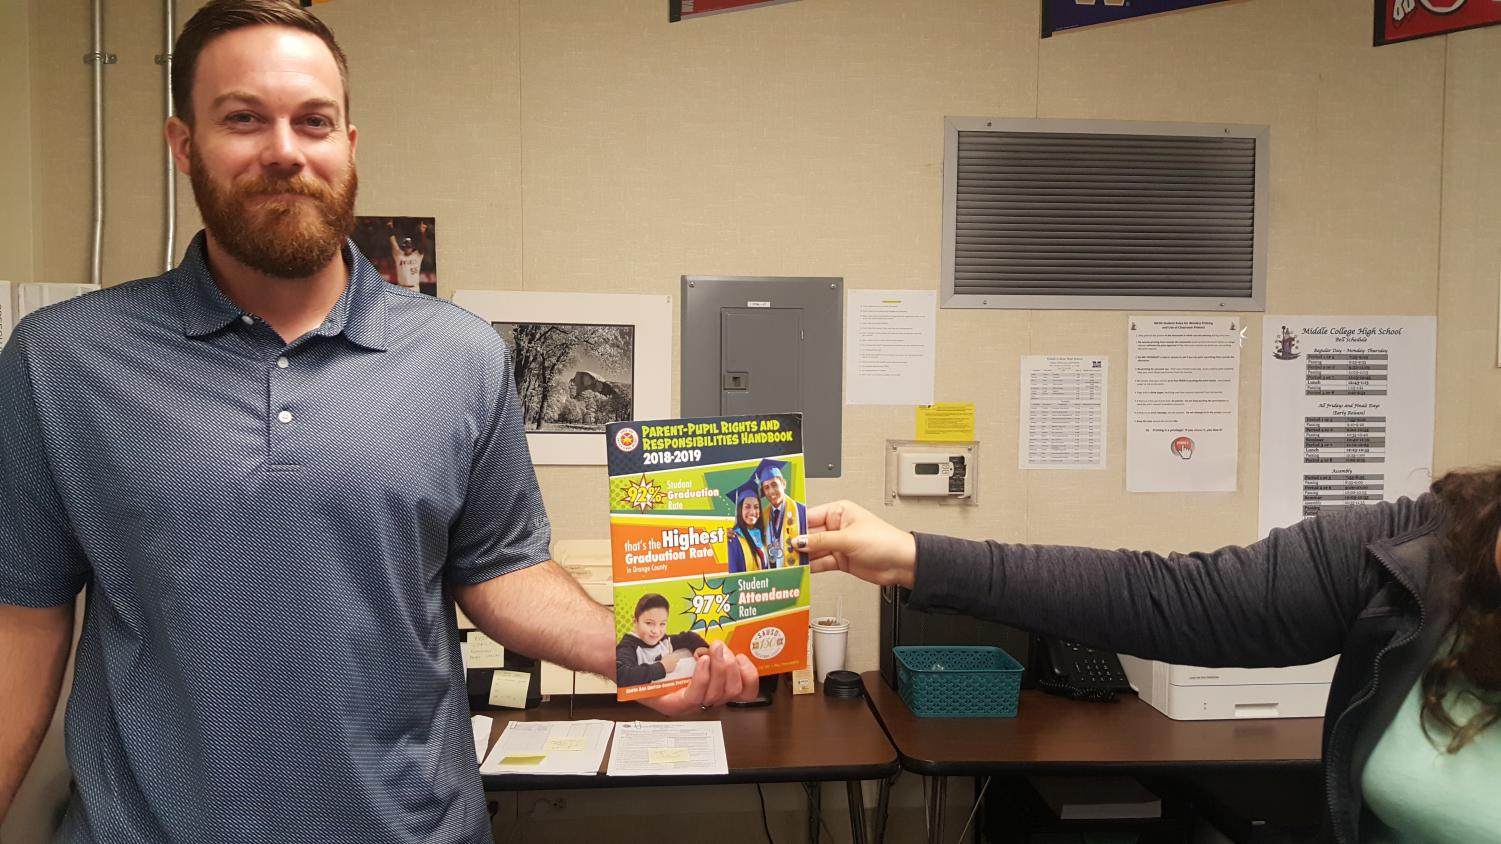 """AVID teacher, Matthew Curtis, hands the """"Parent-Pupil Rights and Responsibilities Handbook"""" to a sophomore student."""